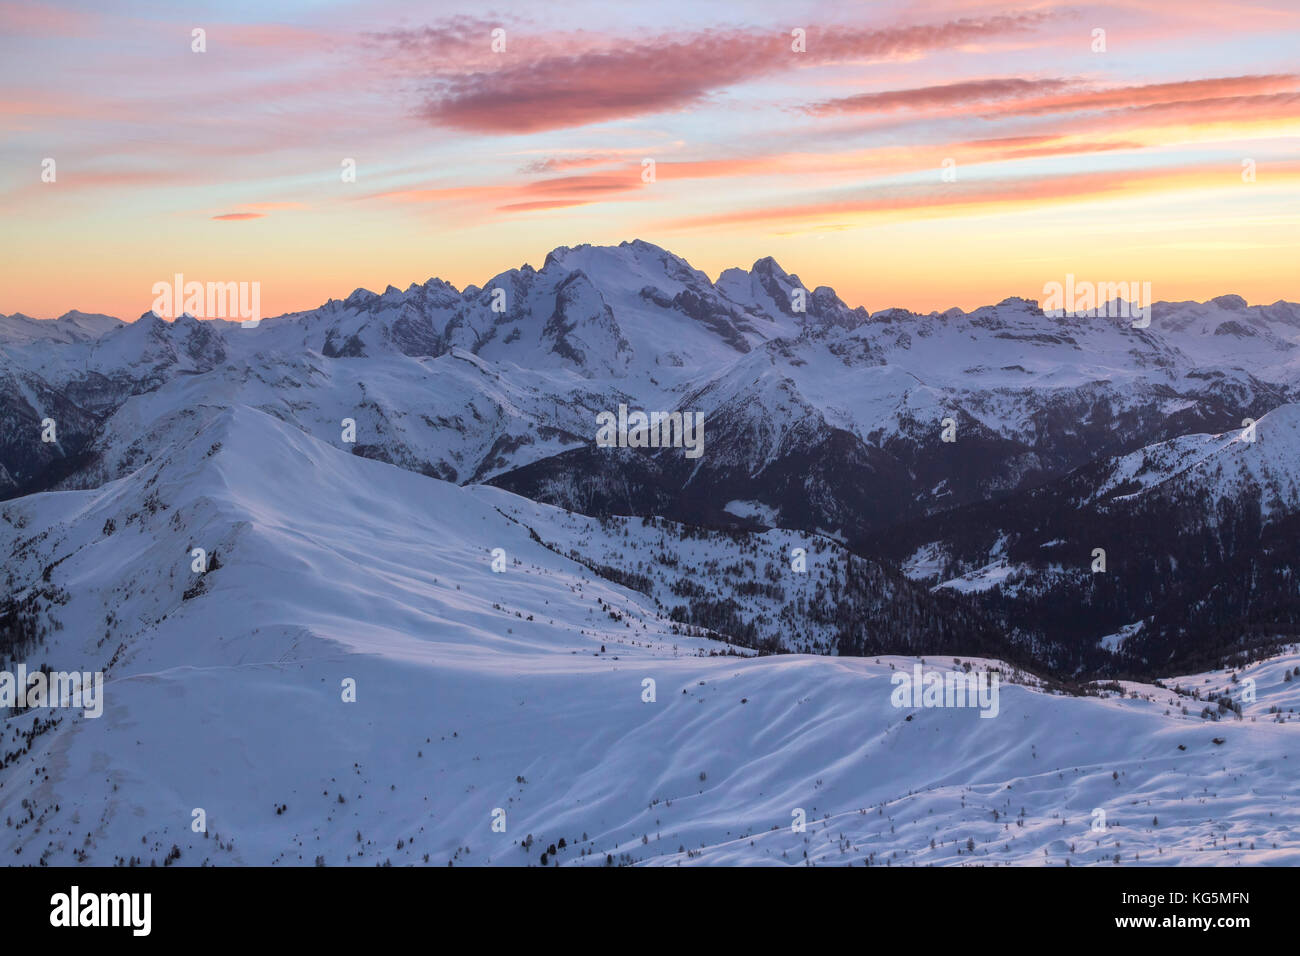 Europe, Italy, veneto, Belluno. Winter landscape from Nuvolau peak towards Marmolada and mount Pore in foreground, Stock Photo